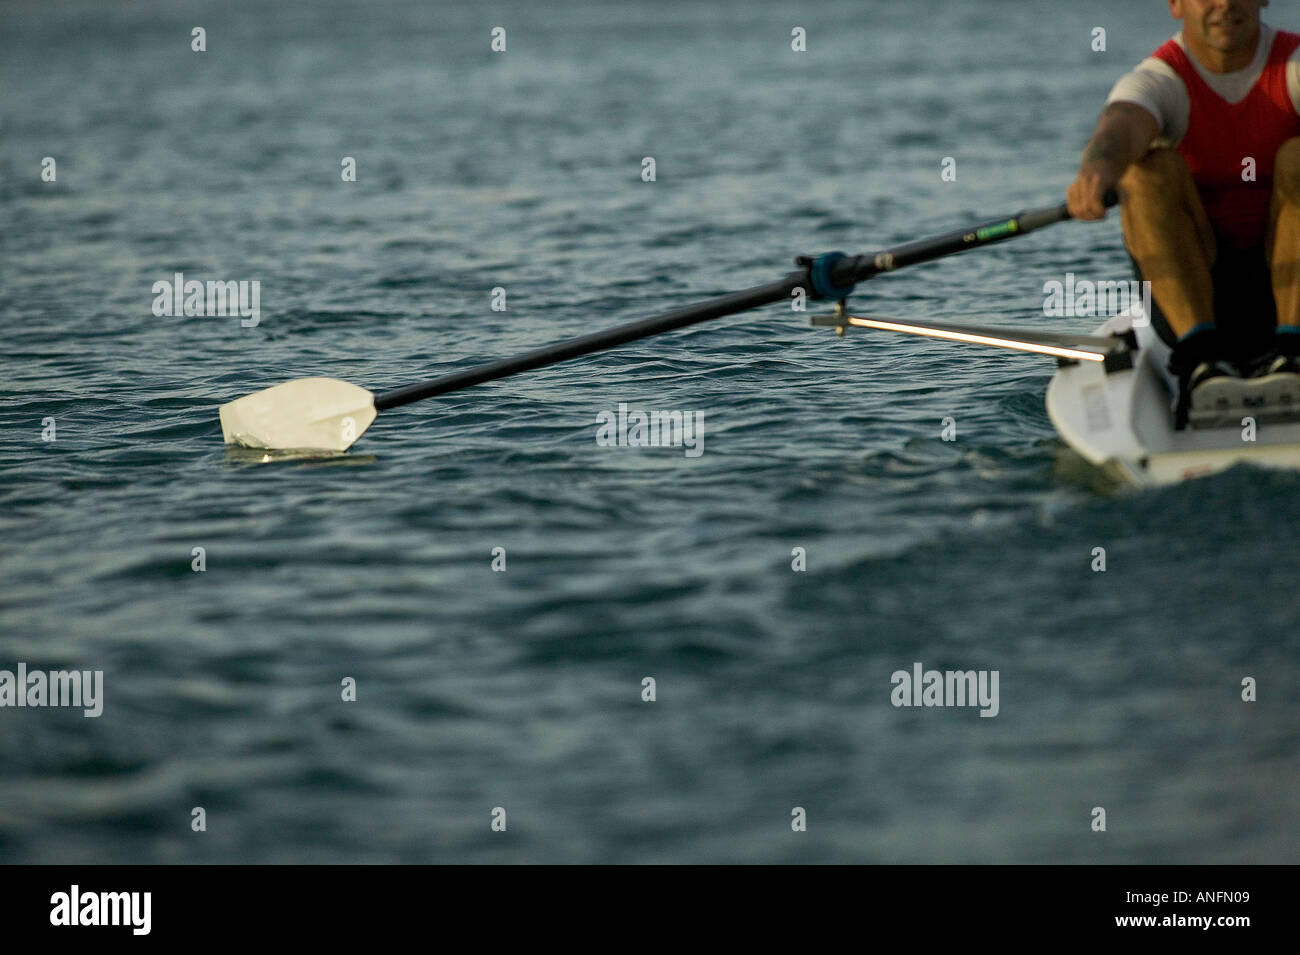 Single coxless rower with red bib - Stock Image